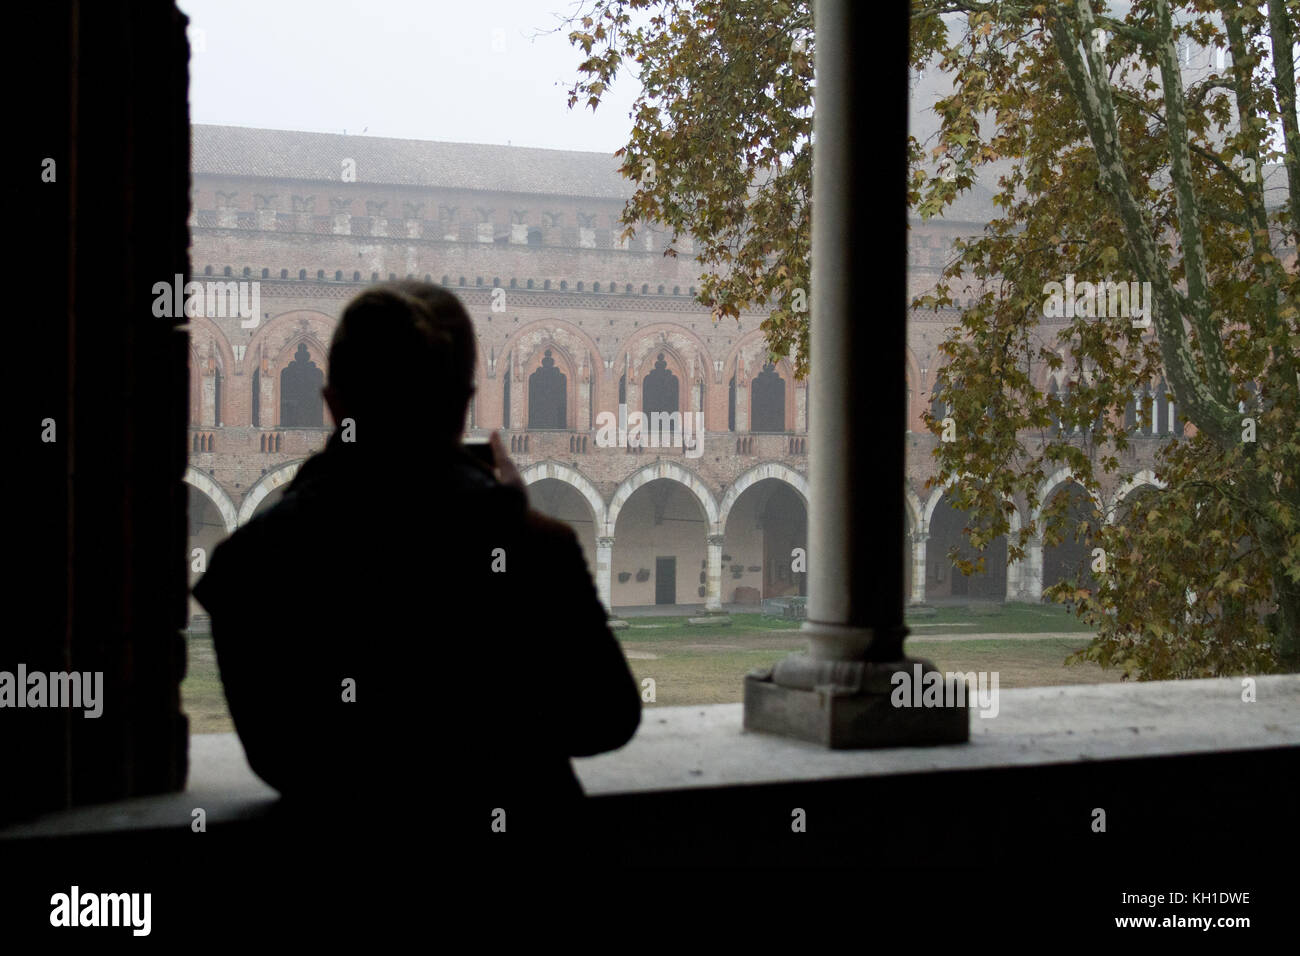 A silhouette of a girl taking a photo of Castello Visconteo through a lucent gothic parapet - Stock Image